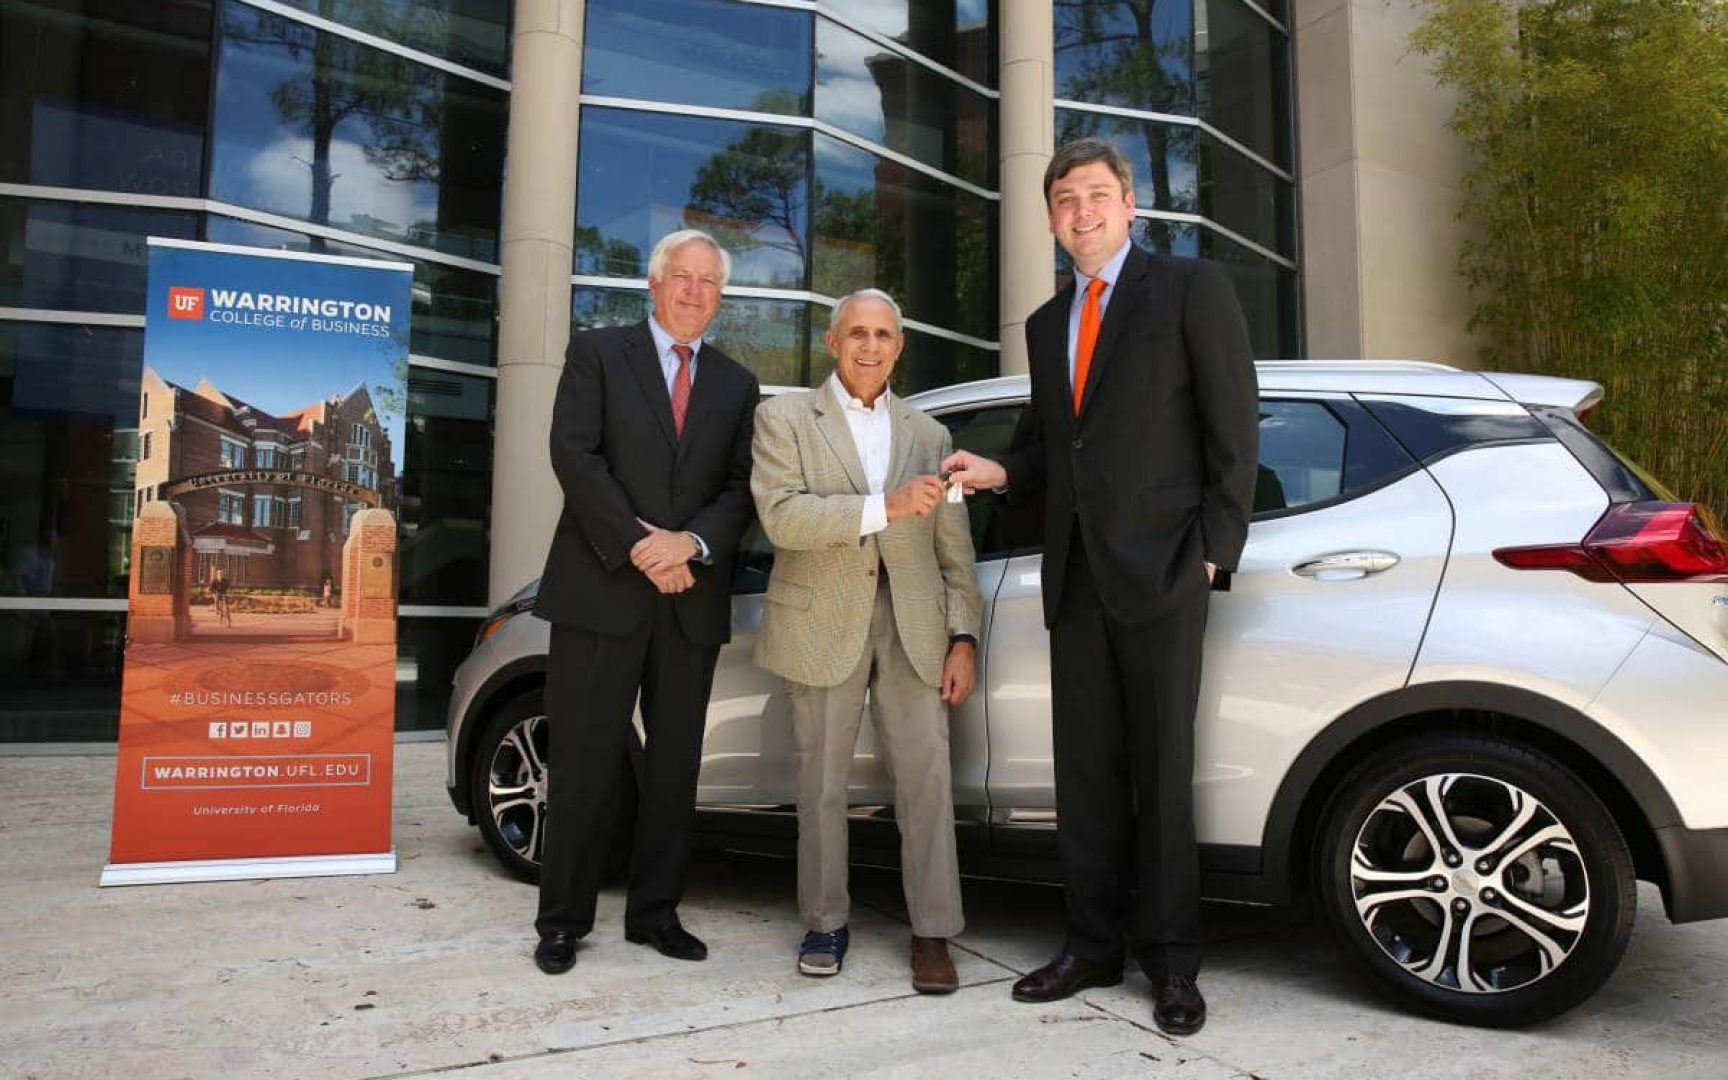 Three men stand in front of a car, and one man is handing keys to the car to another man